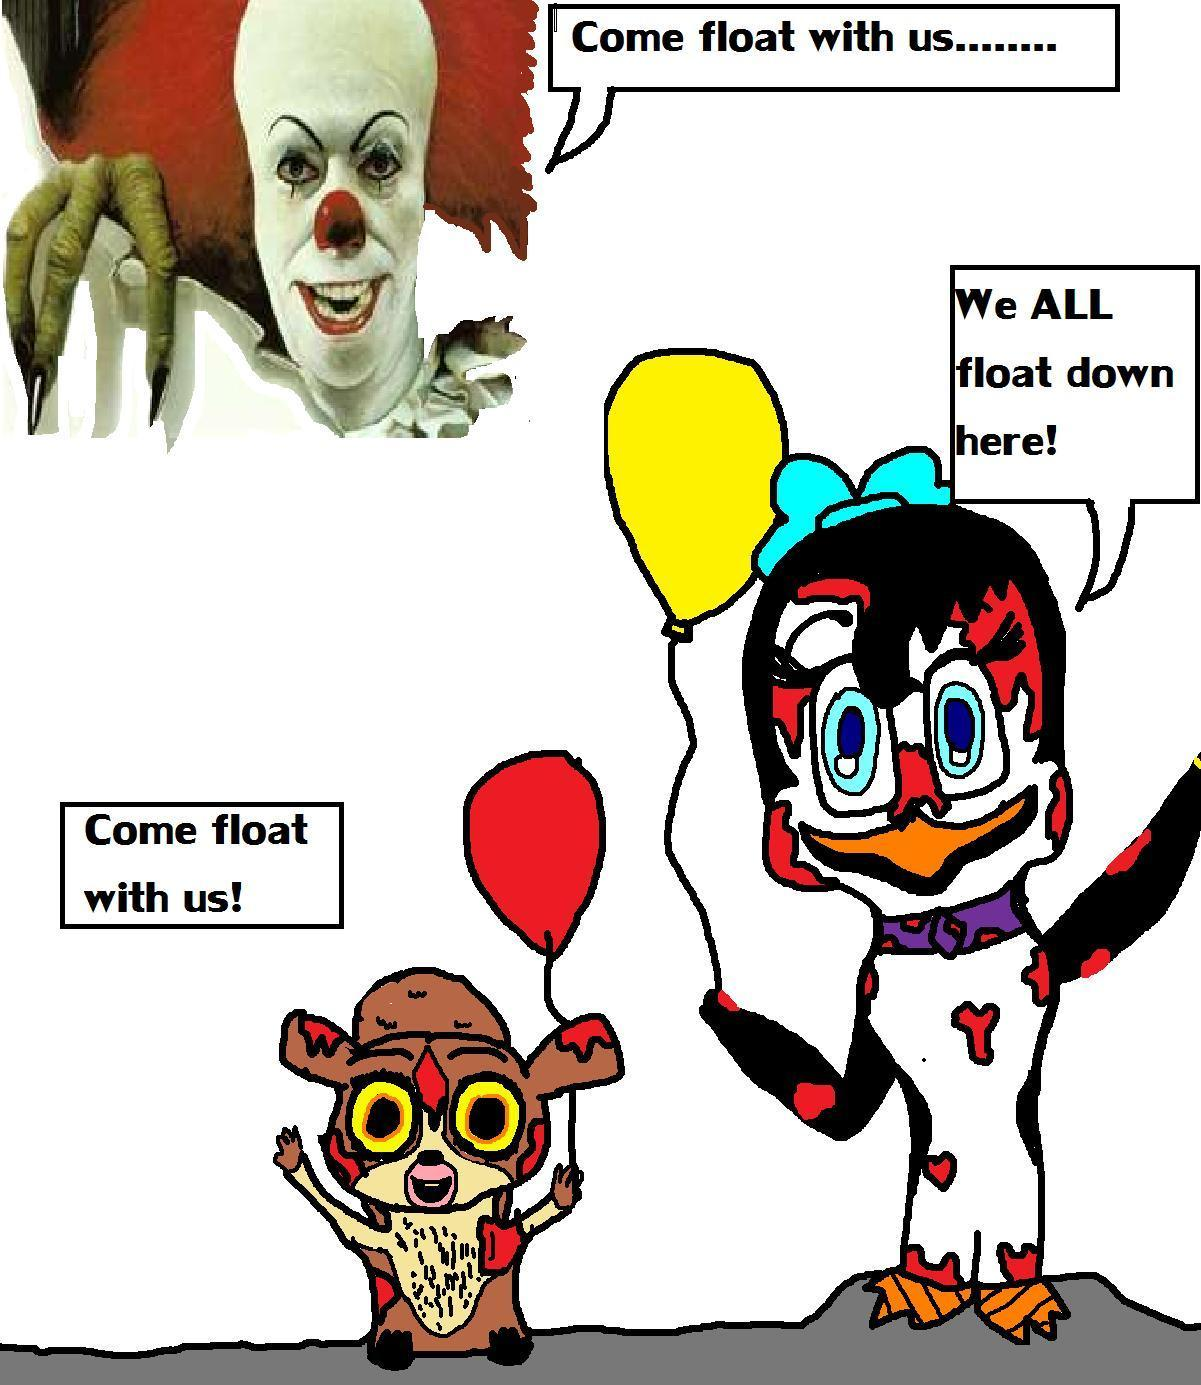 Come float with us...................................